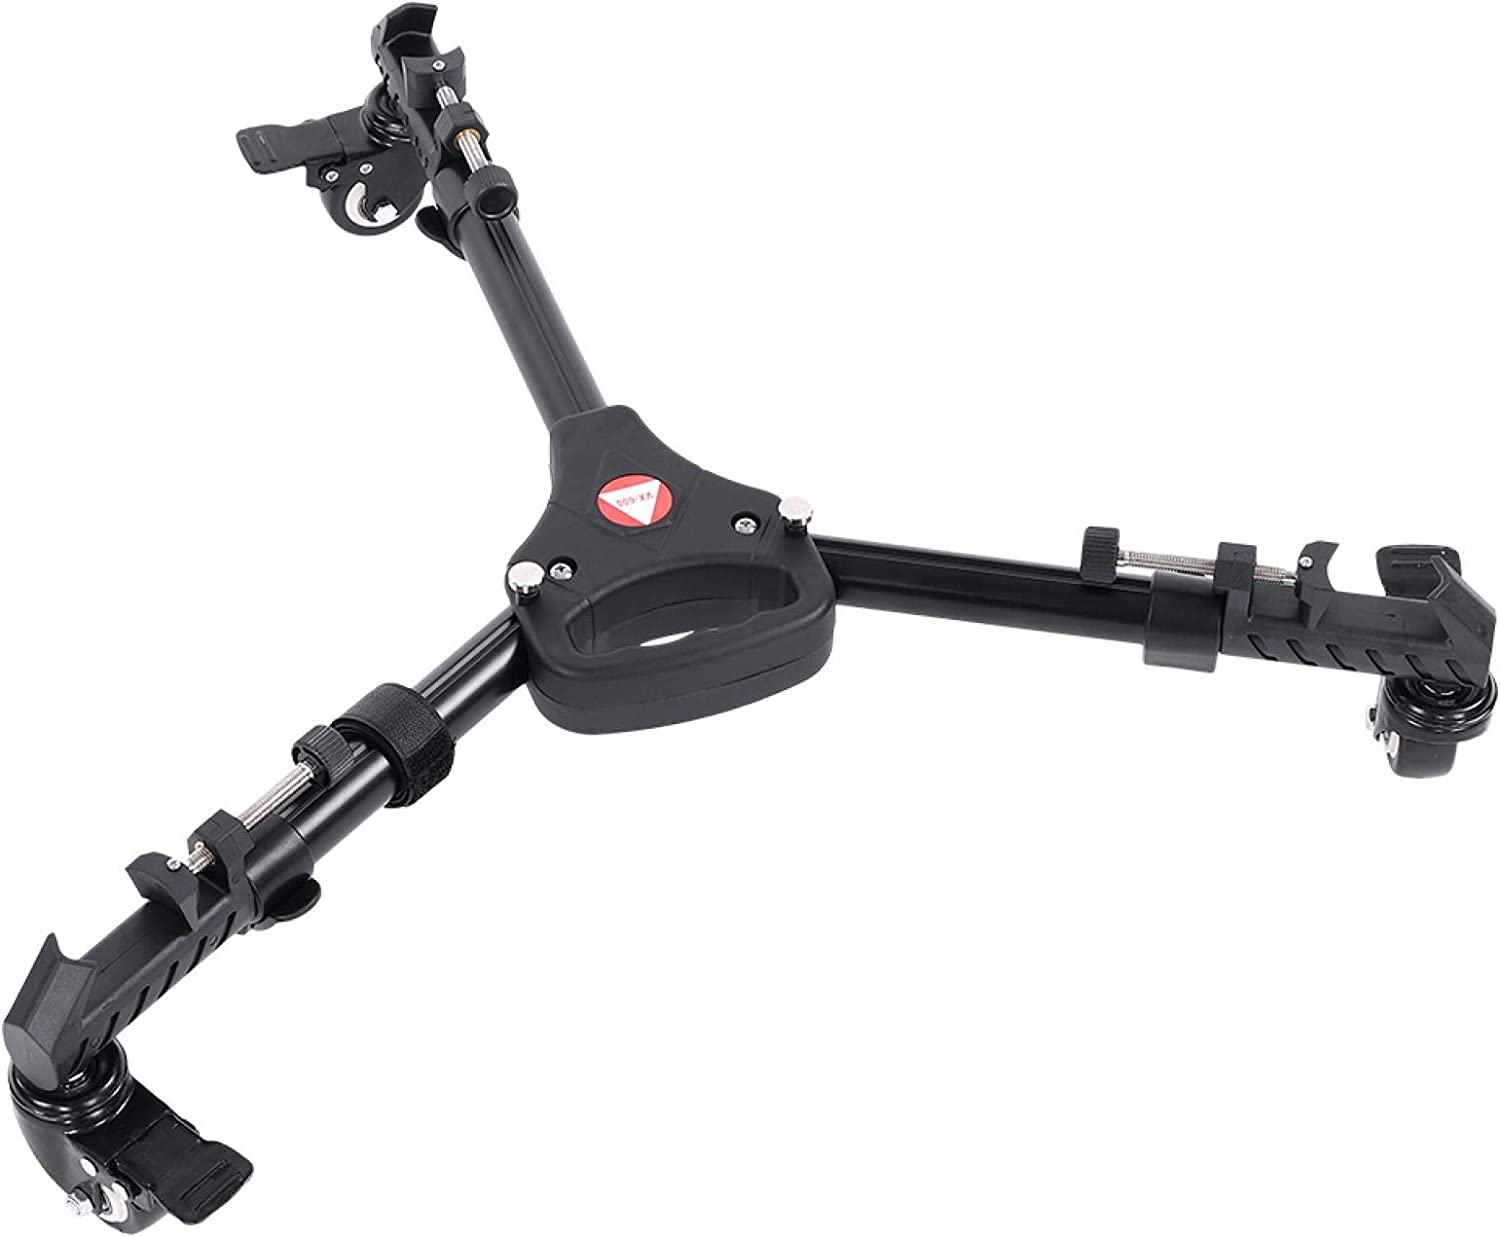 Nannigr Tripod Pulley Base Japan's largest assortment Dolly Outlet sale feature Lightweight Material Tr